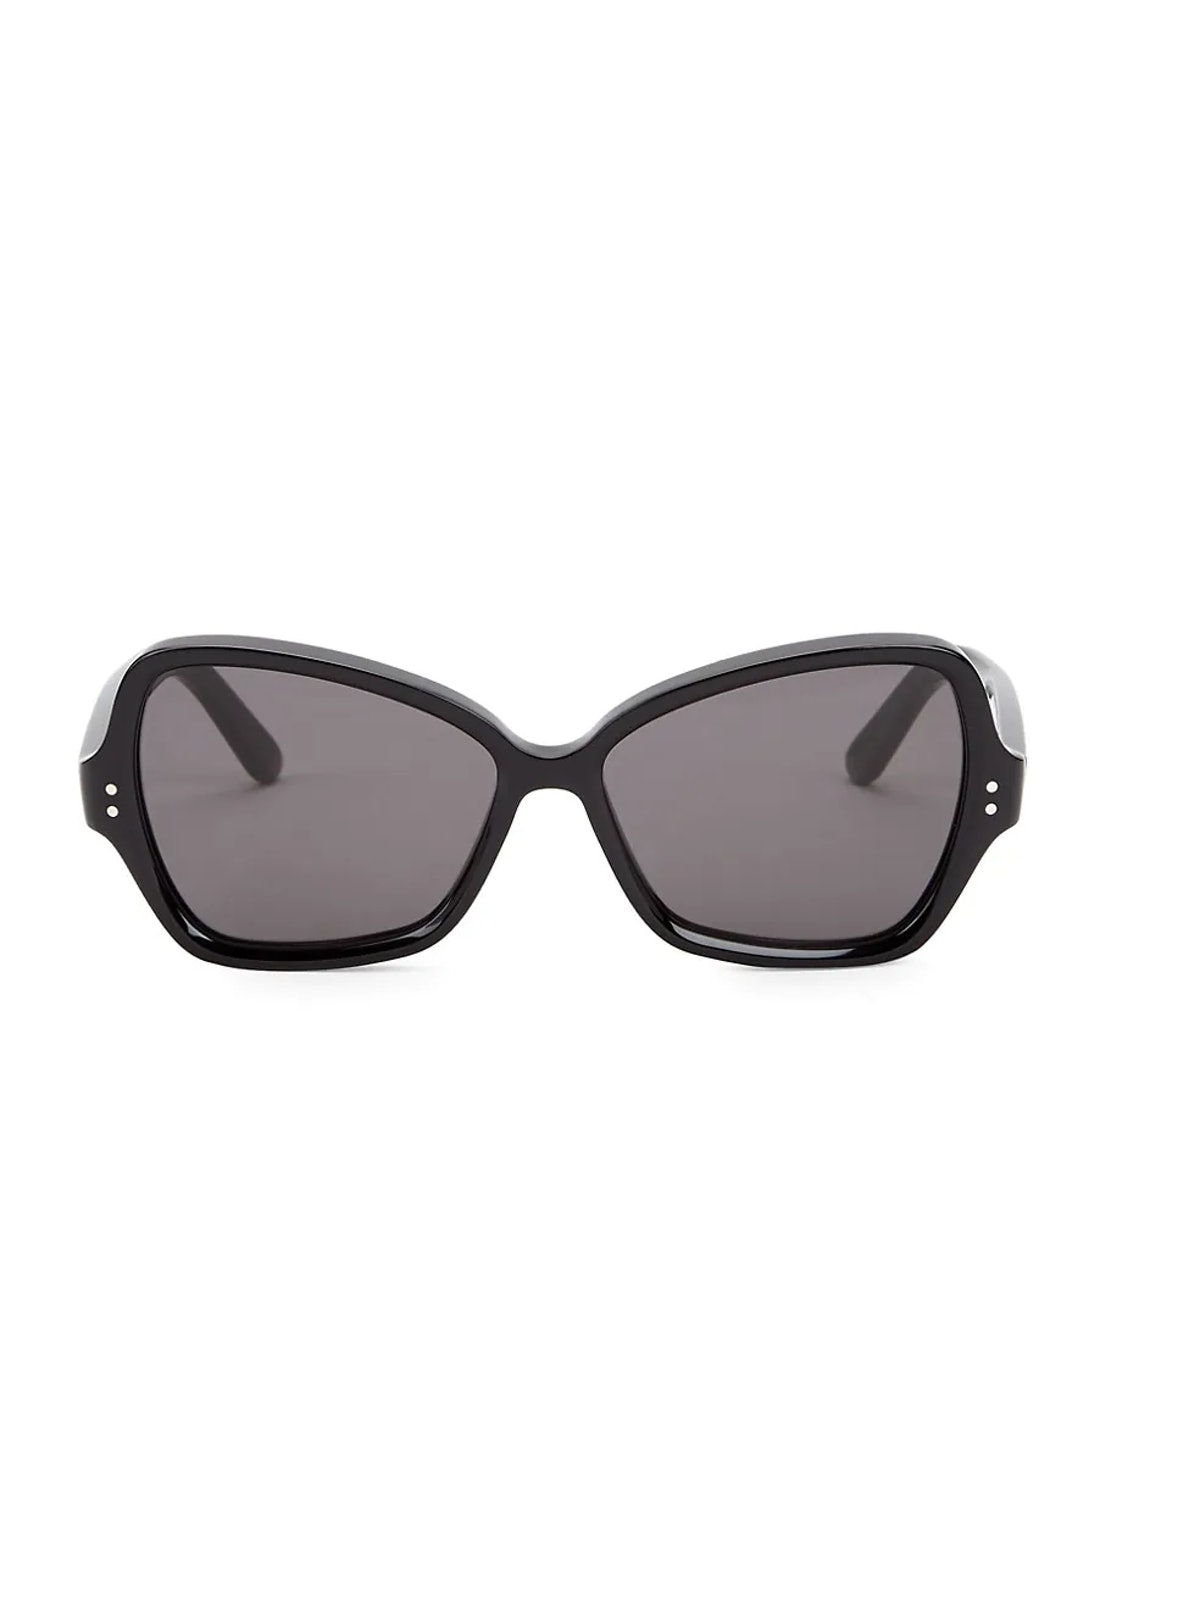 56MM Butterfly Sunglasses from CELINE, available on Saks Fifth Avenue.